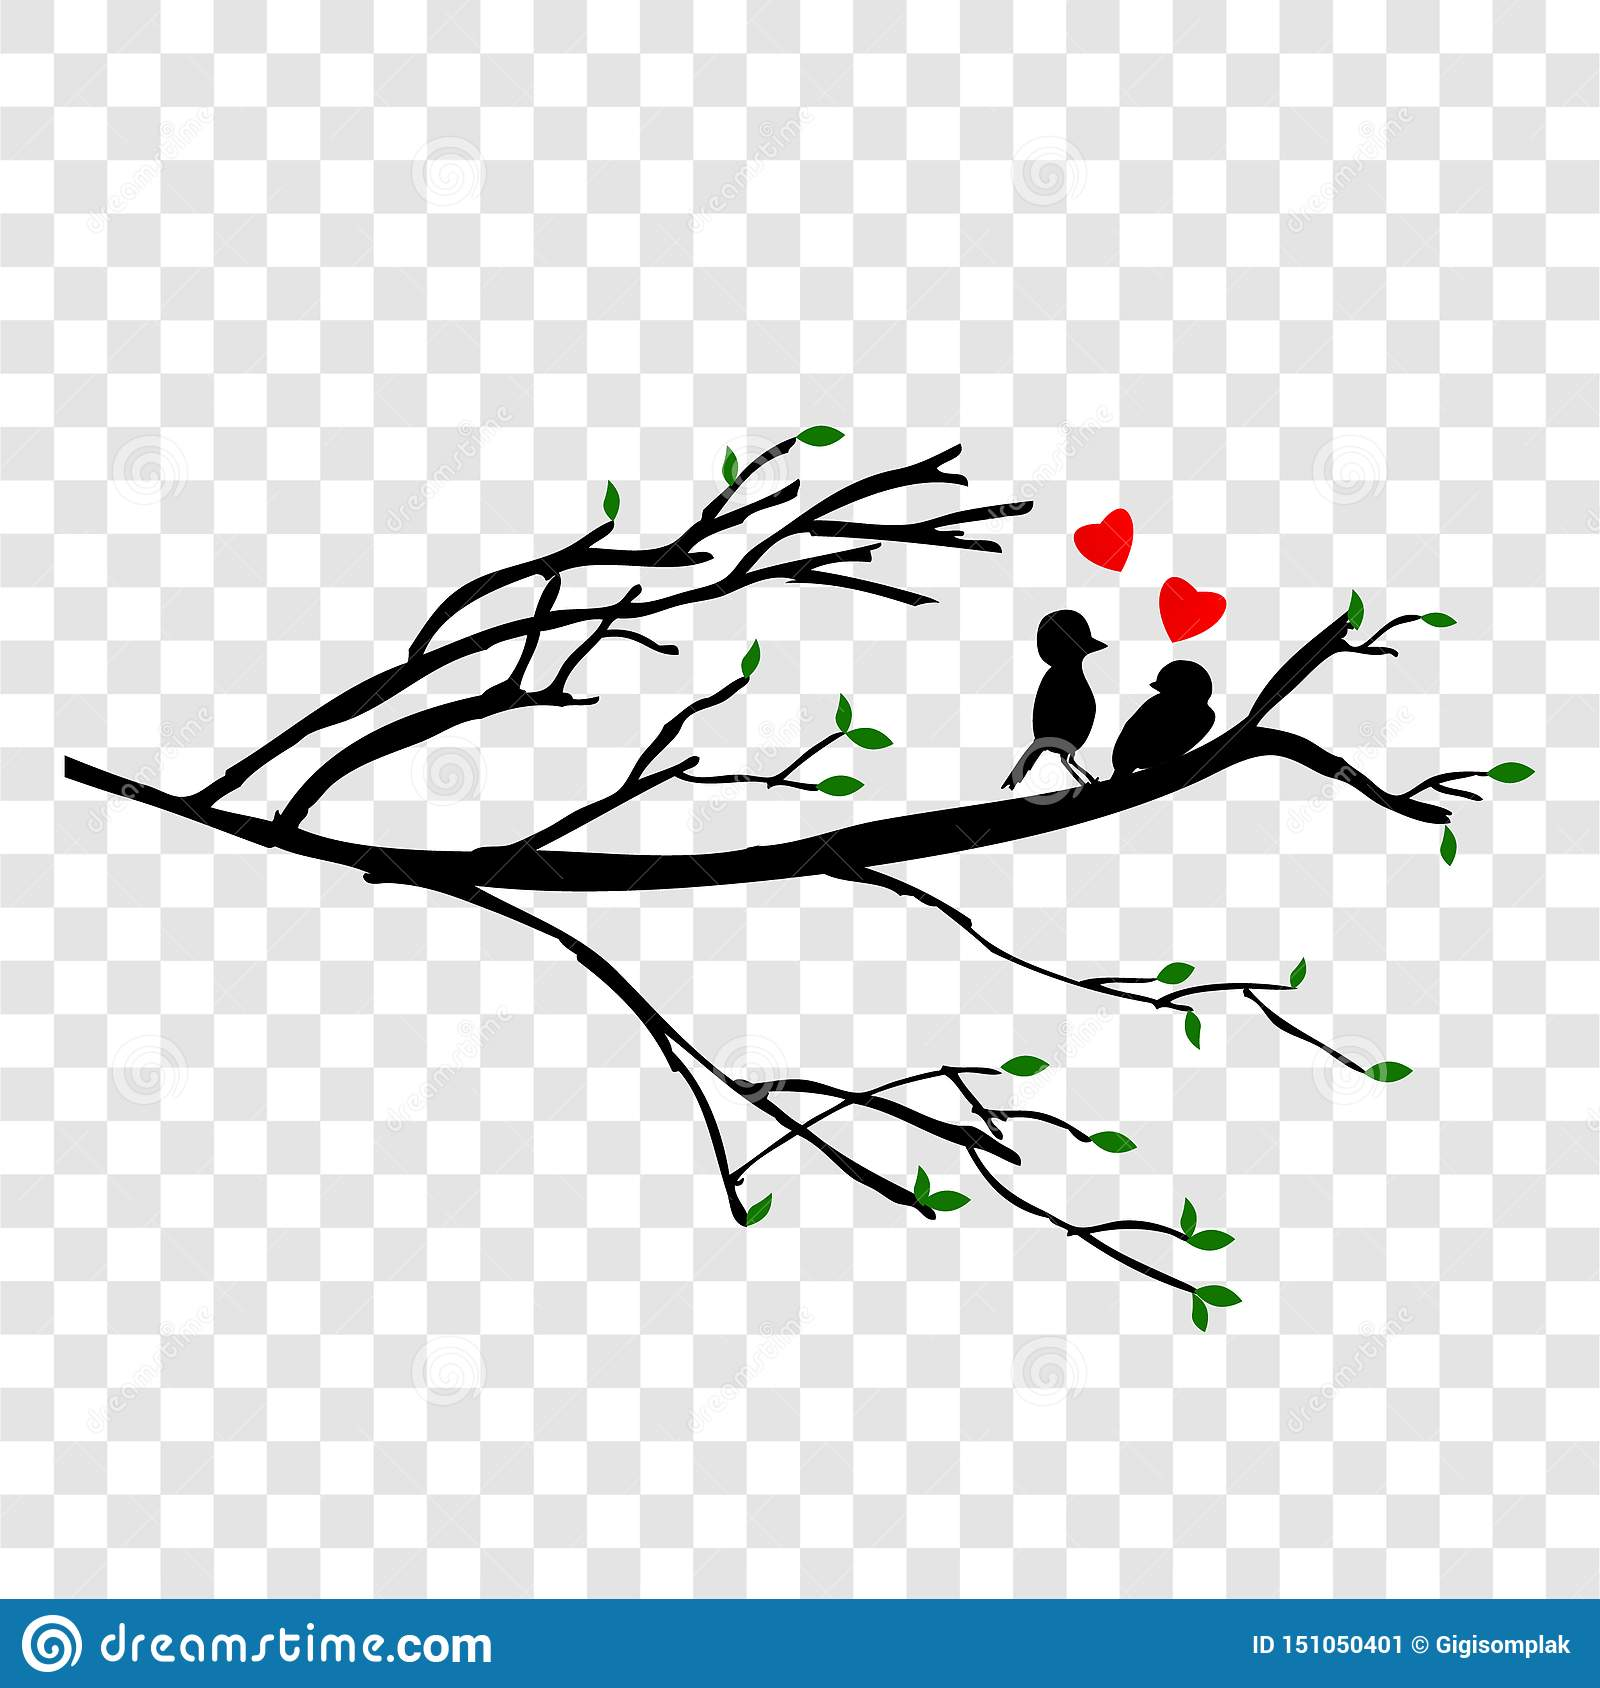 Simple Vector Silhouette Hand Draw Sketch Falling In Love Couple Of Birds At Black Branch At Transparent Effect Background Stock Vector Illustration Of Illustration Couple 151050401